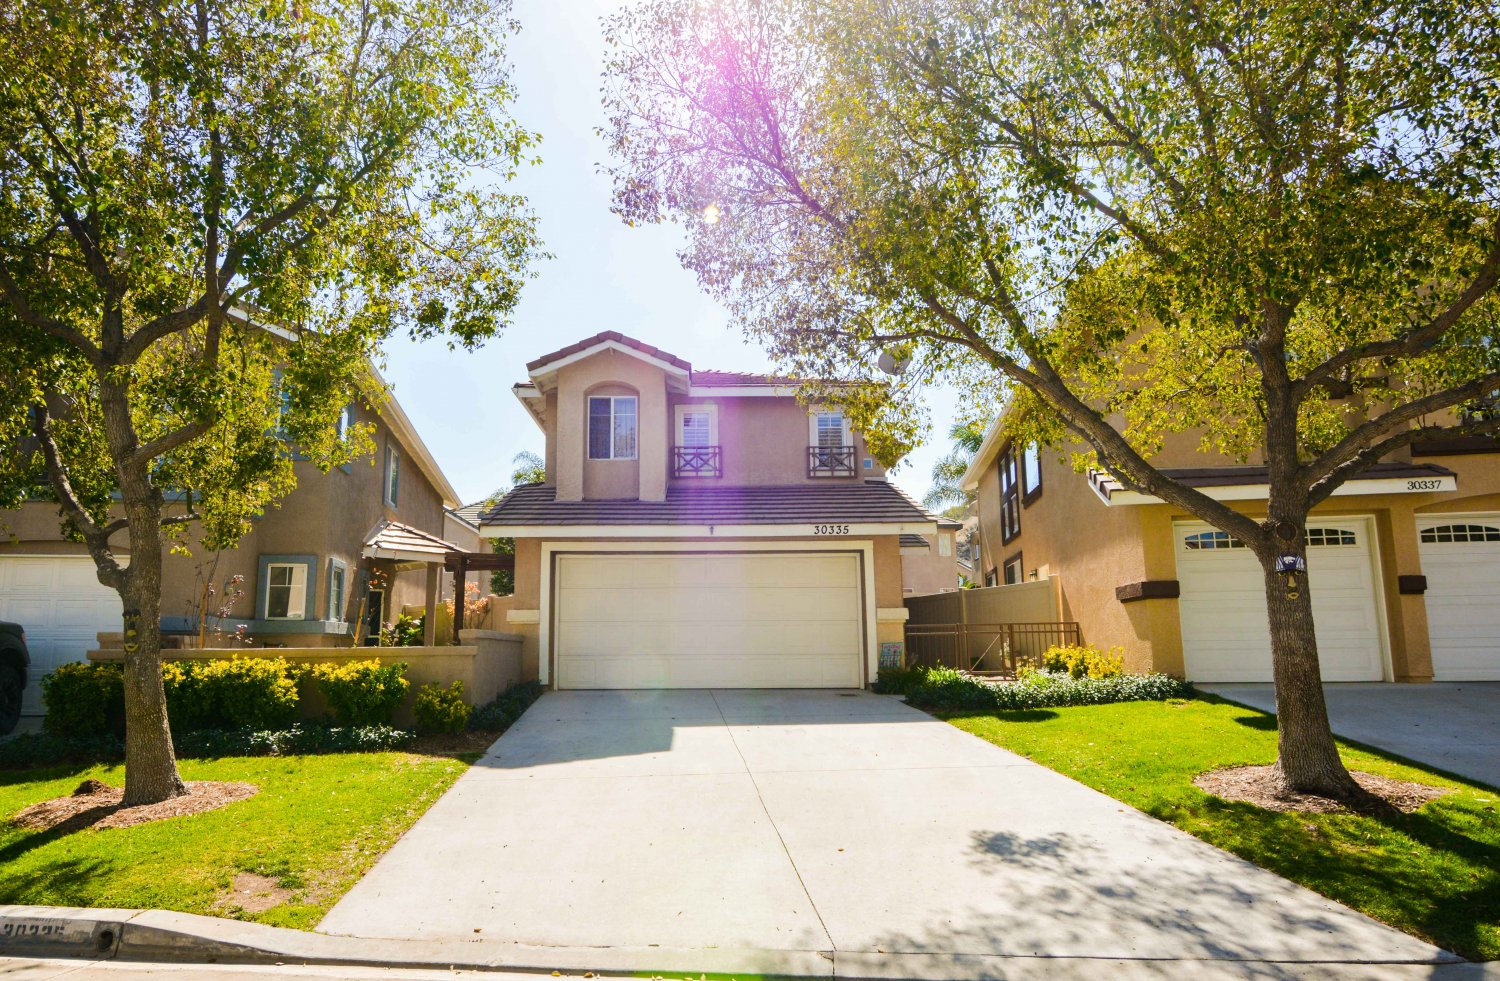 30335 Marigold Cir | Photo 1